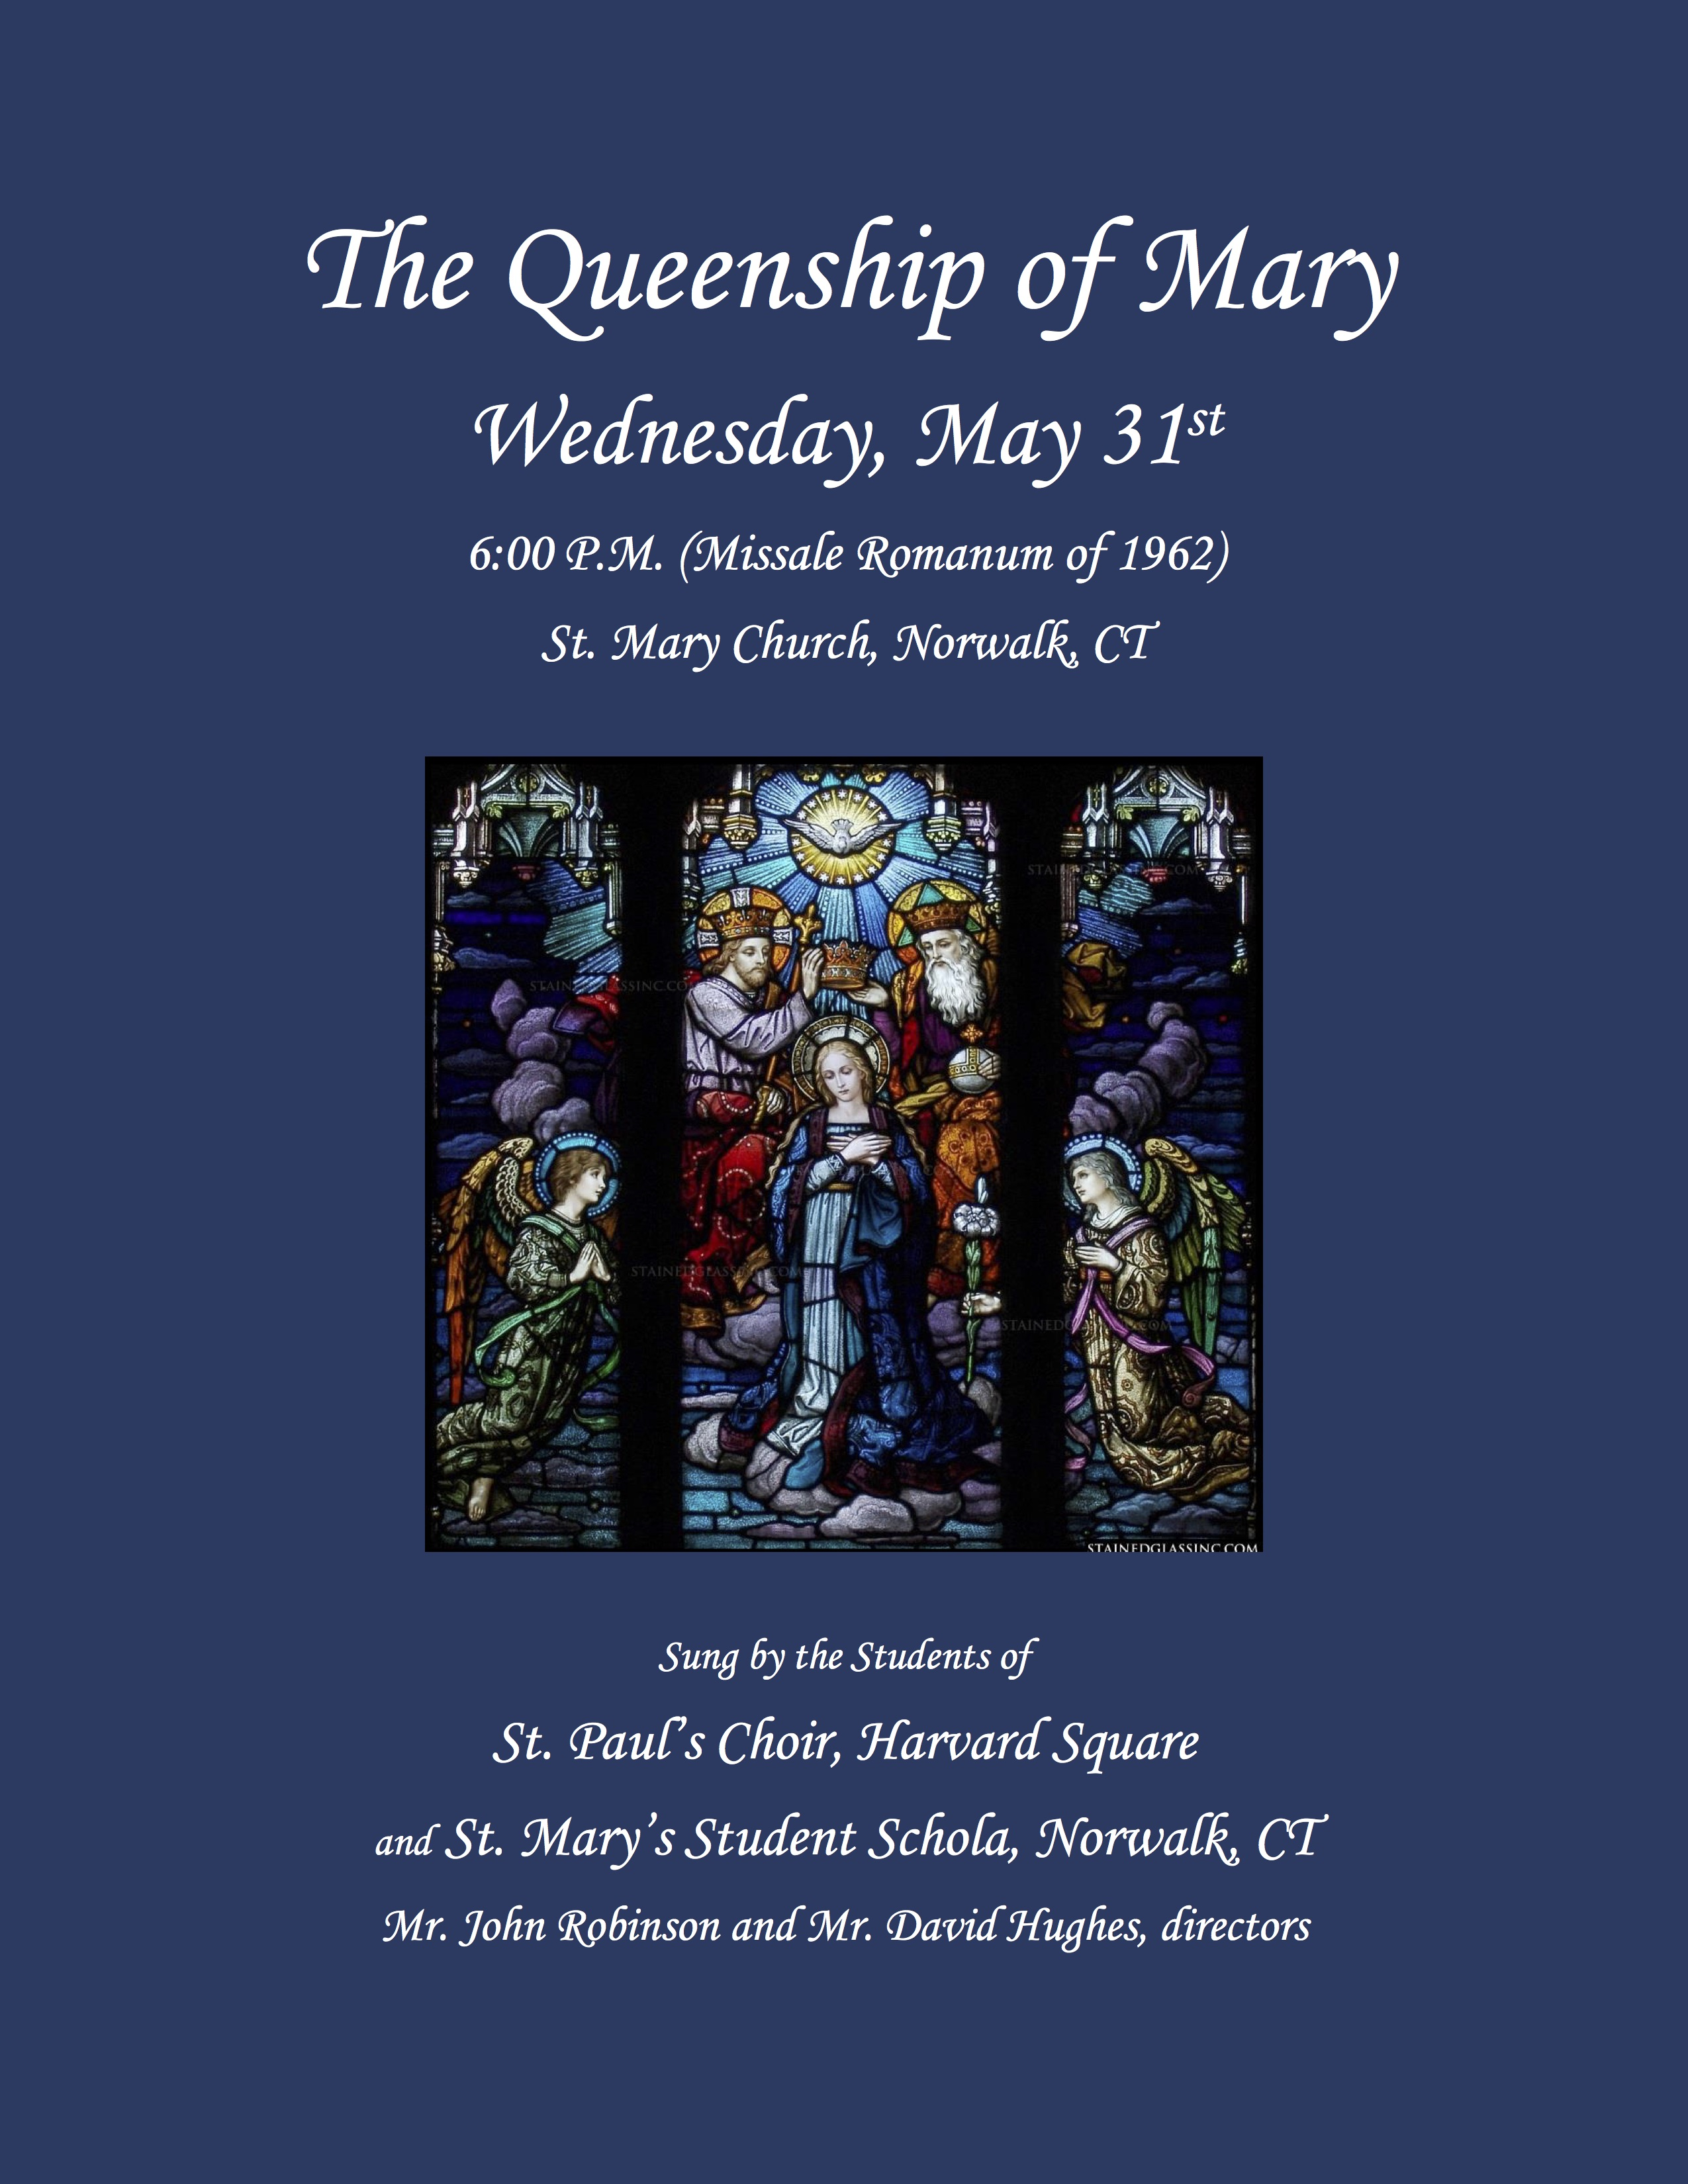 Queenship of Mary flyer-1